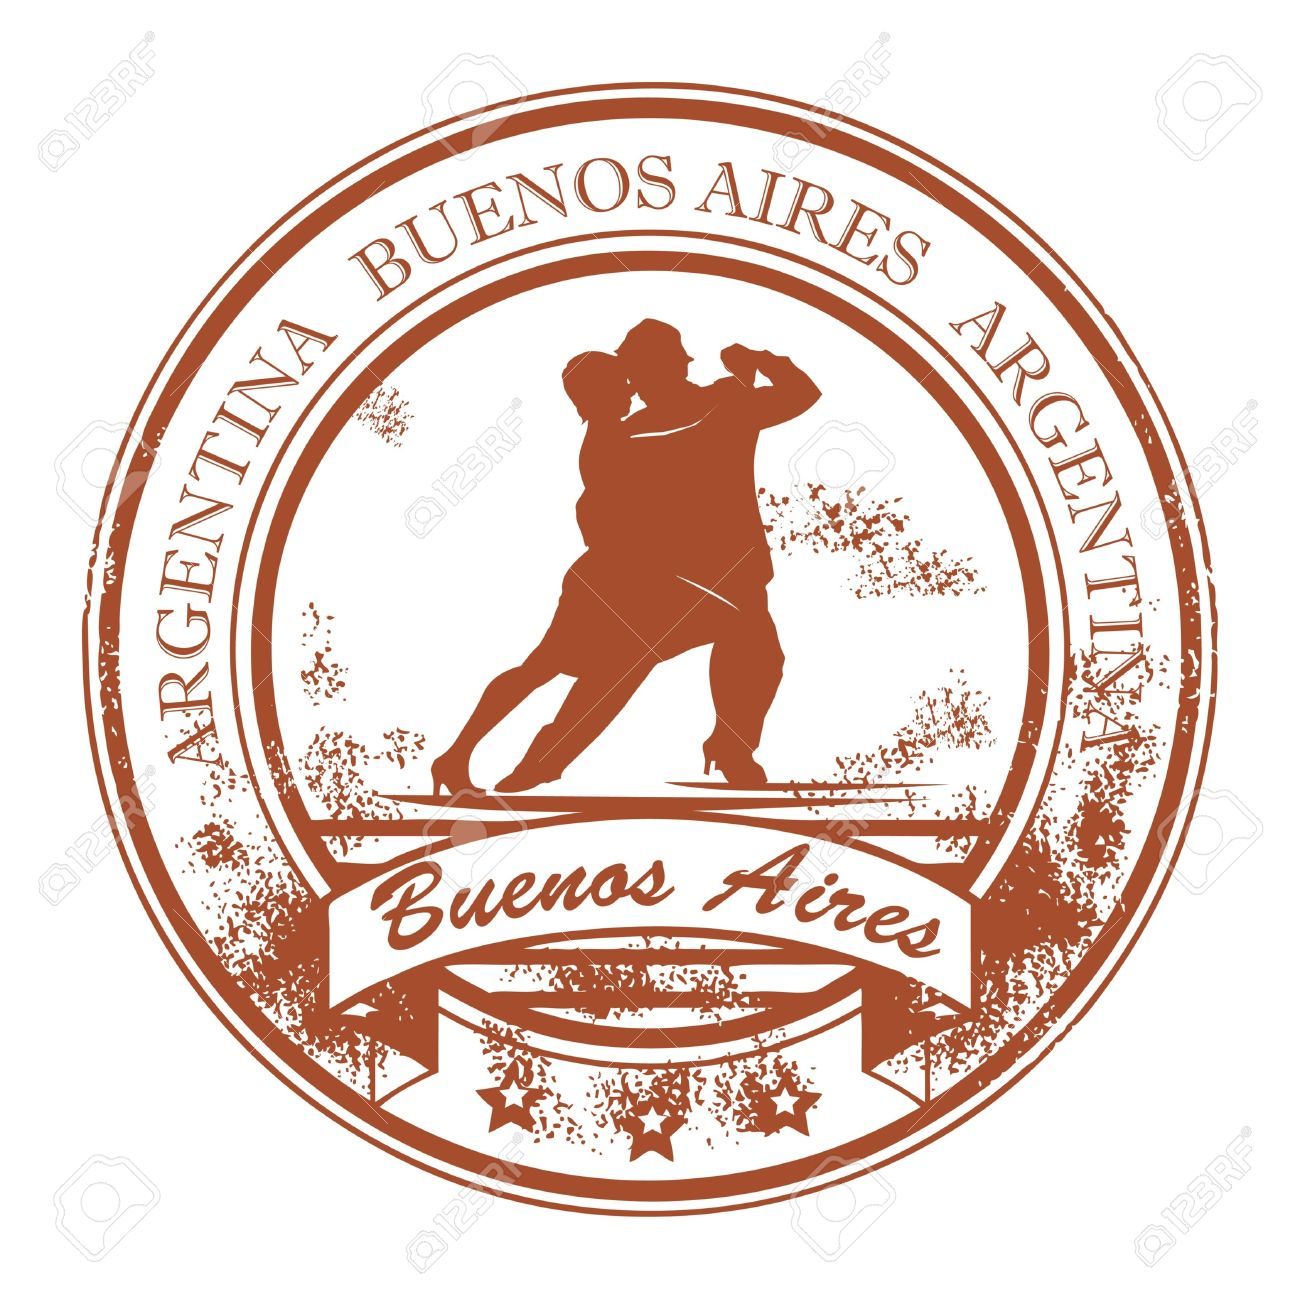 82 Buenos Aires Tango Stock Vector Illustration And Royalty Free.